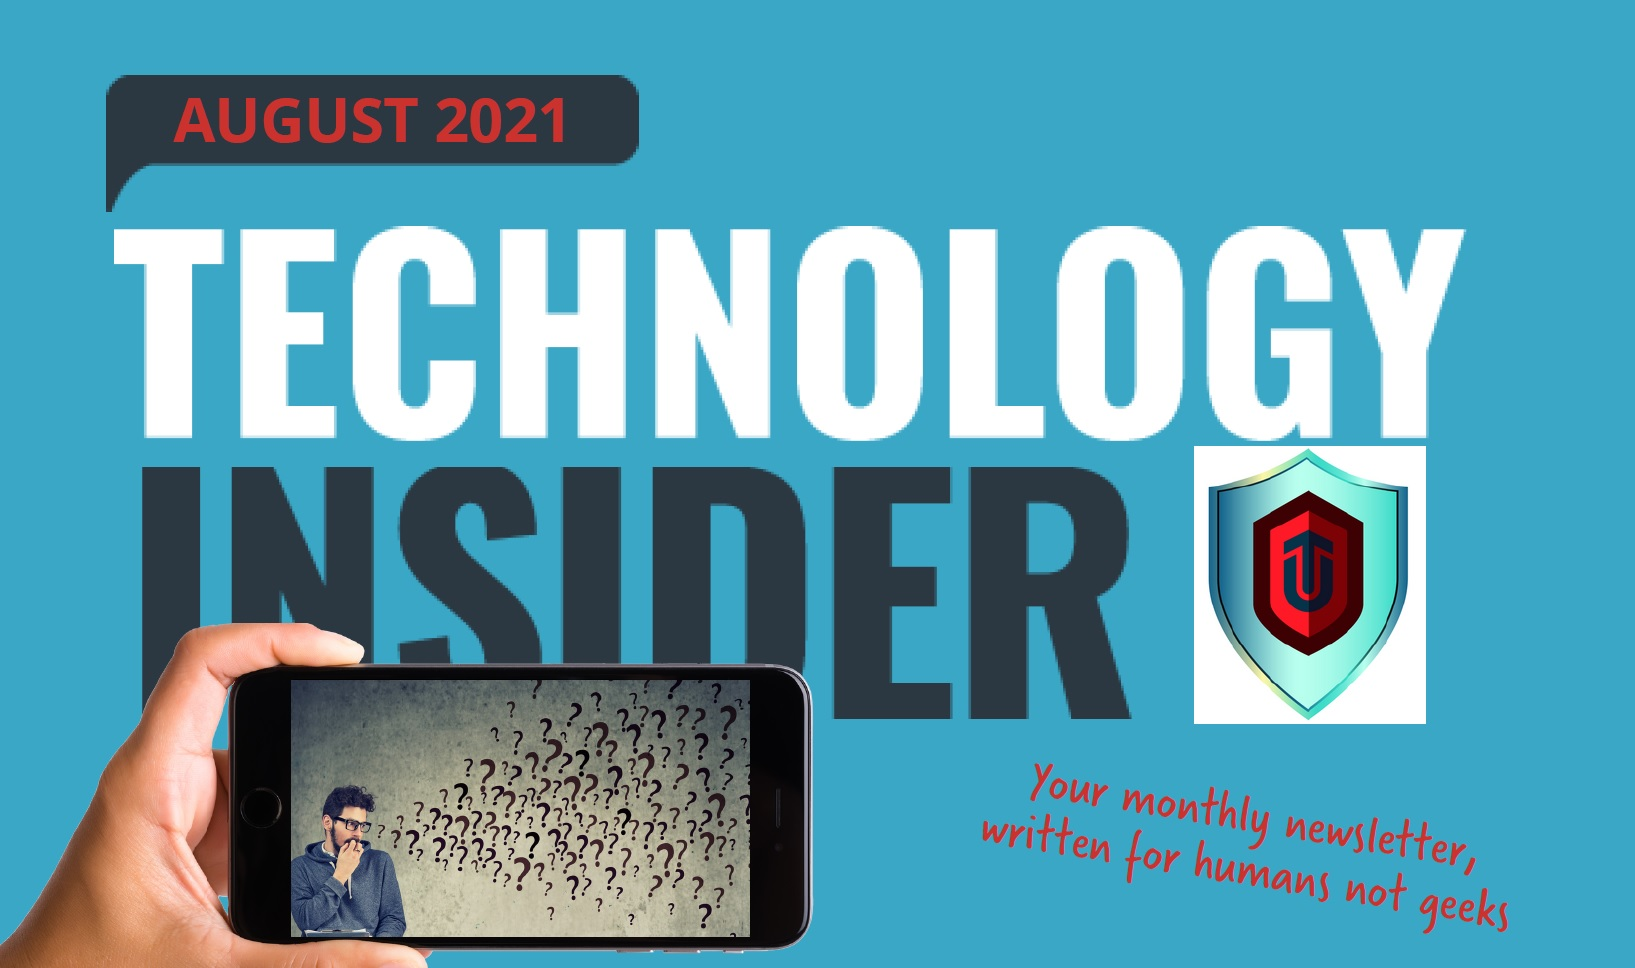 August Technology Insider, Outsource IT Support